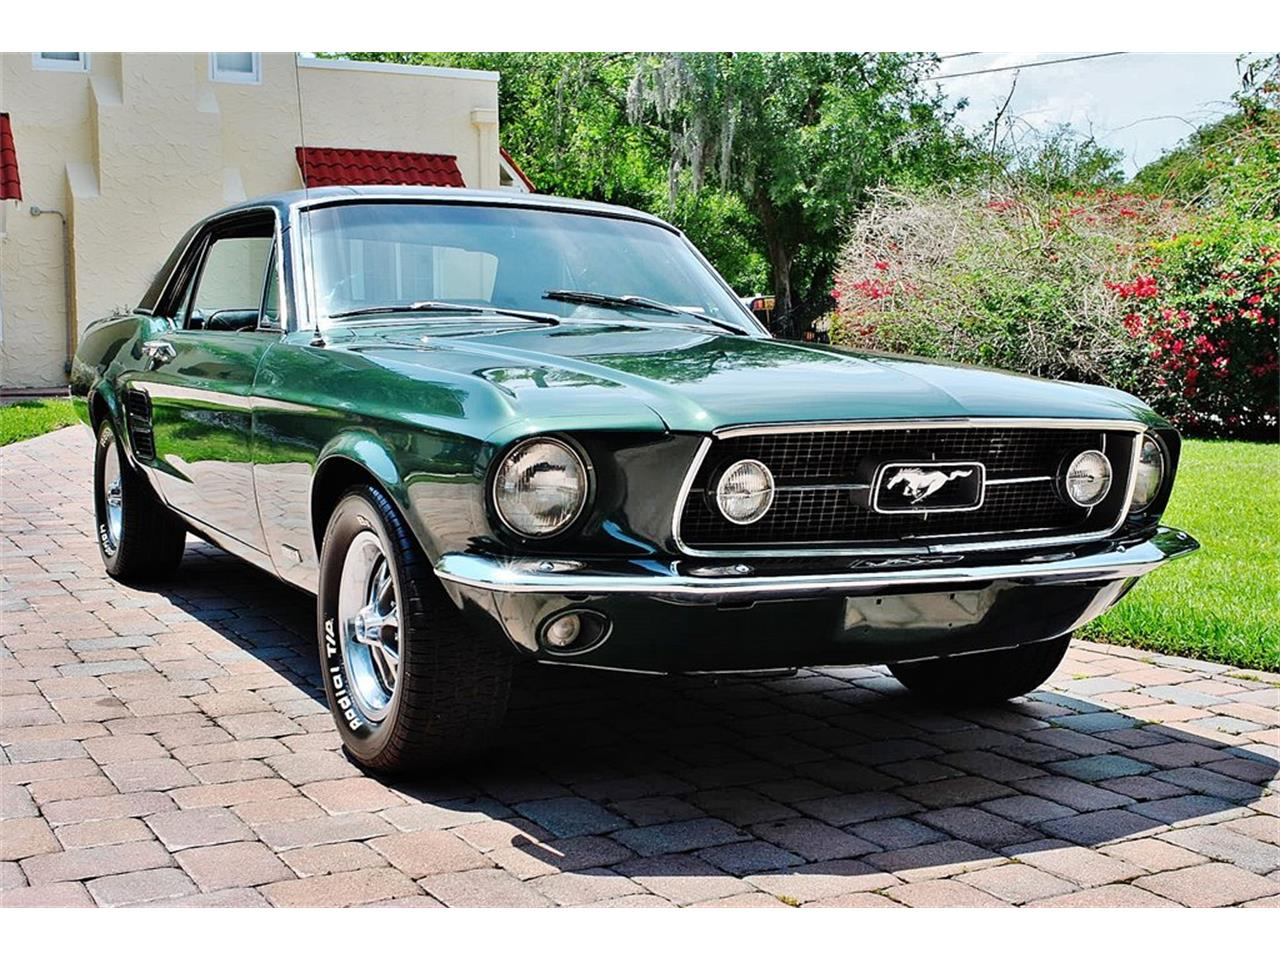 Large picture of 67 mustang gt nfpd